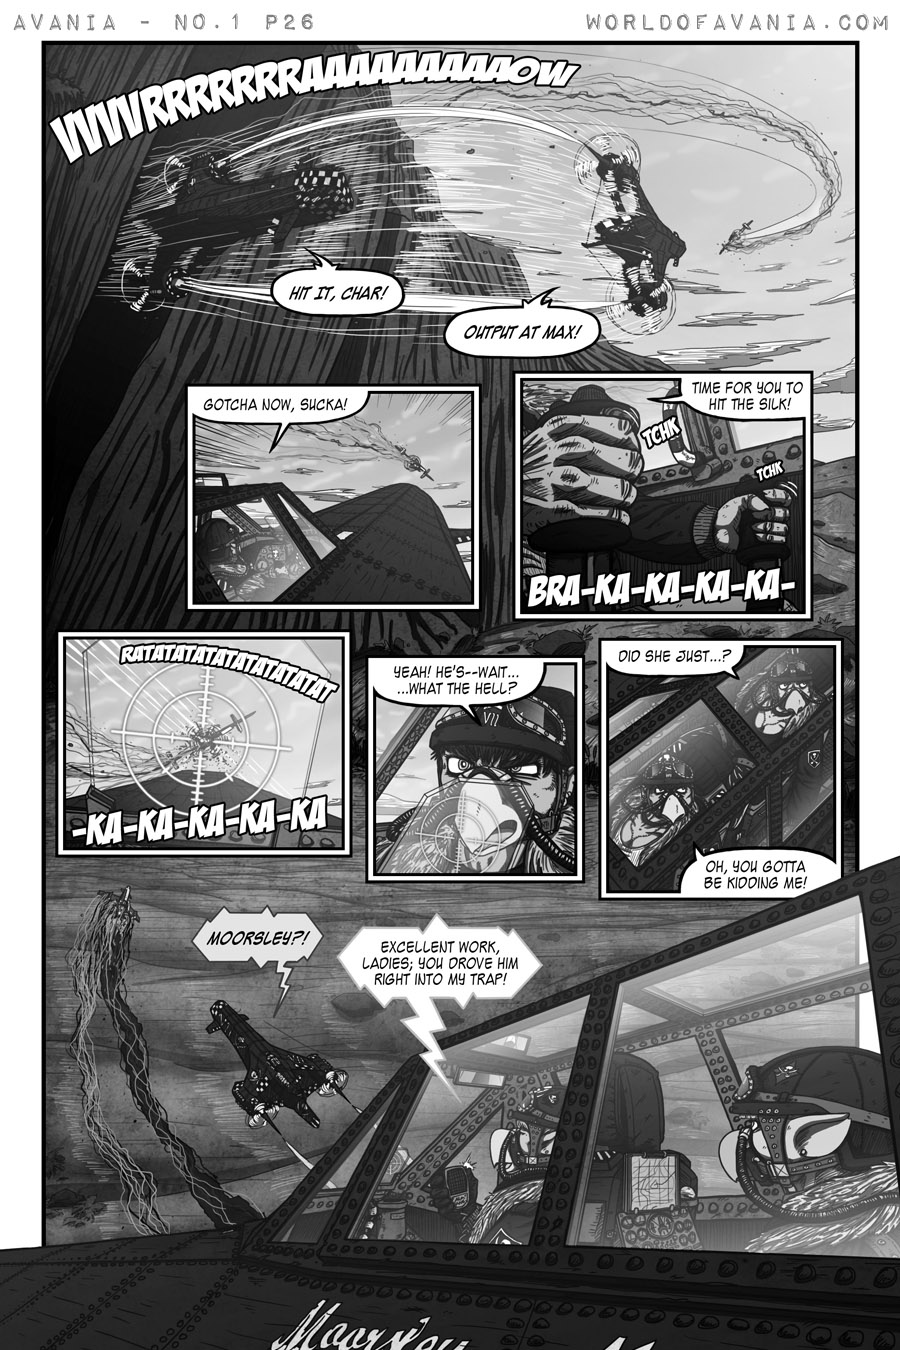 Avania Comic - Issue No.1, Page 26